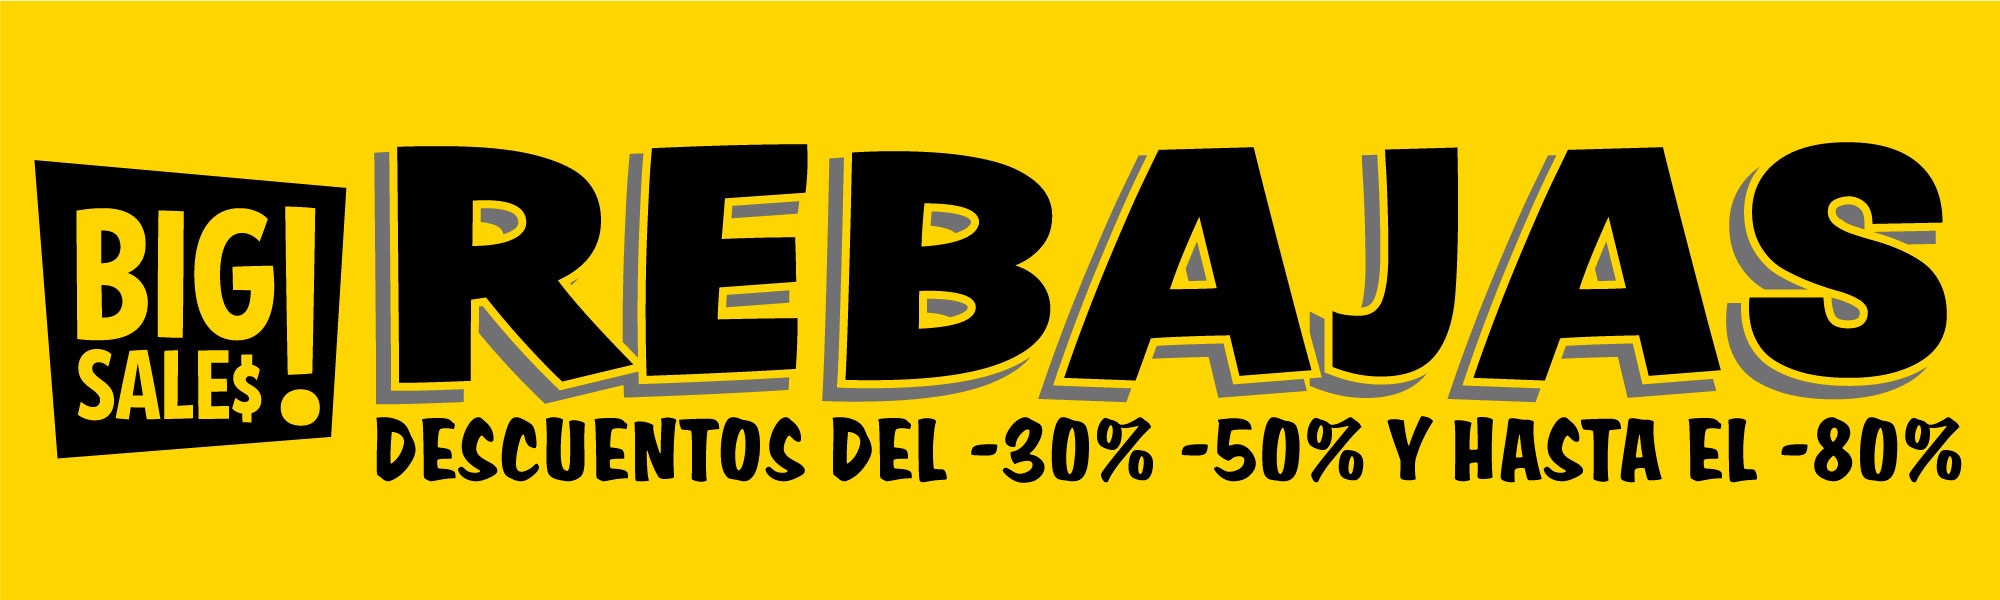 slide-rebajas-sales-amarillo